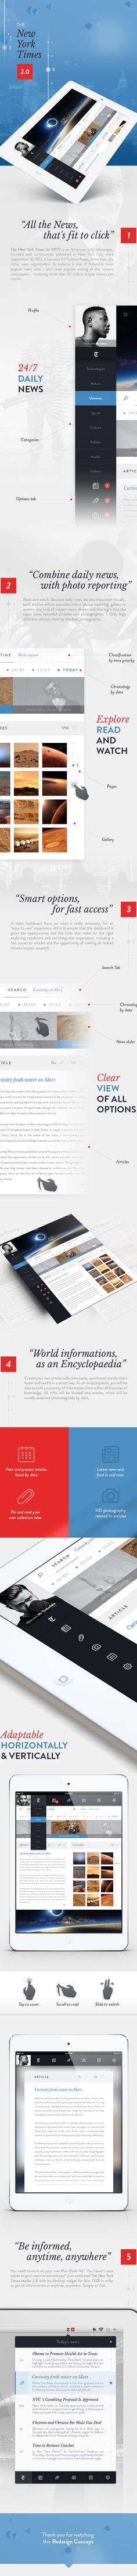 very interesting redesign concept - THE NEW YORK TIMES 2.0 on Behance